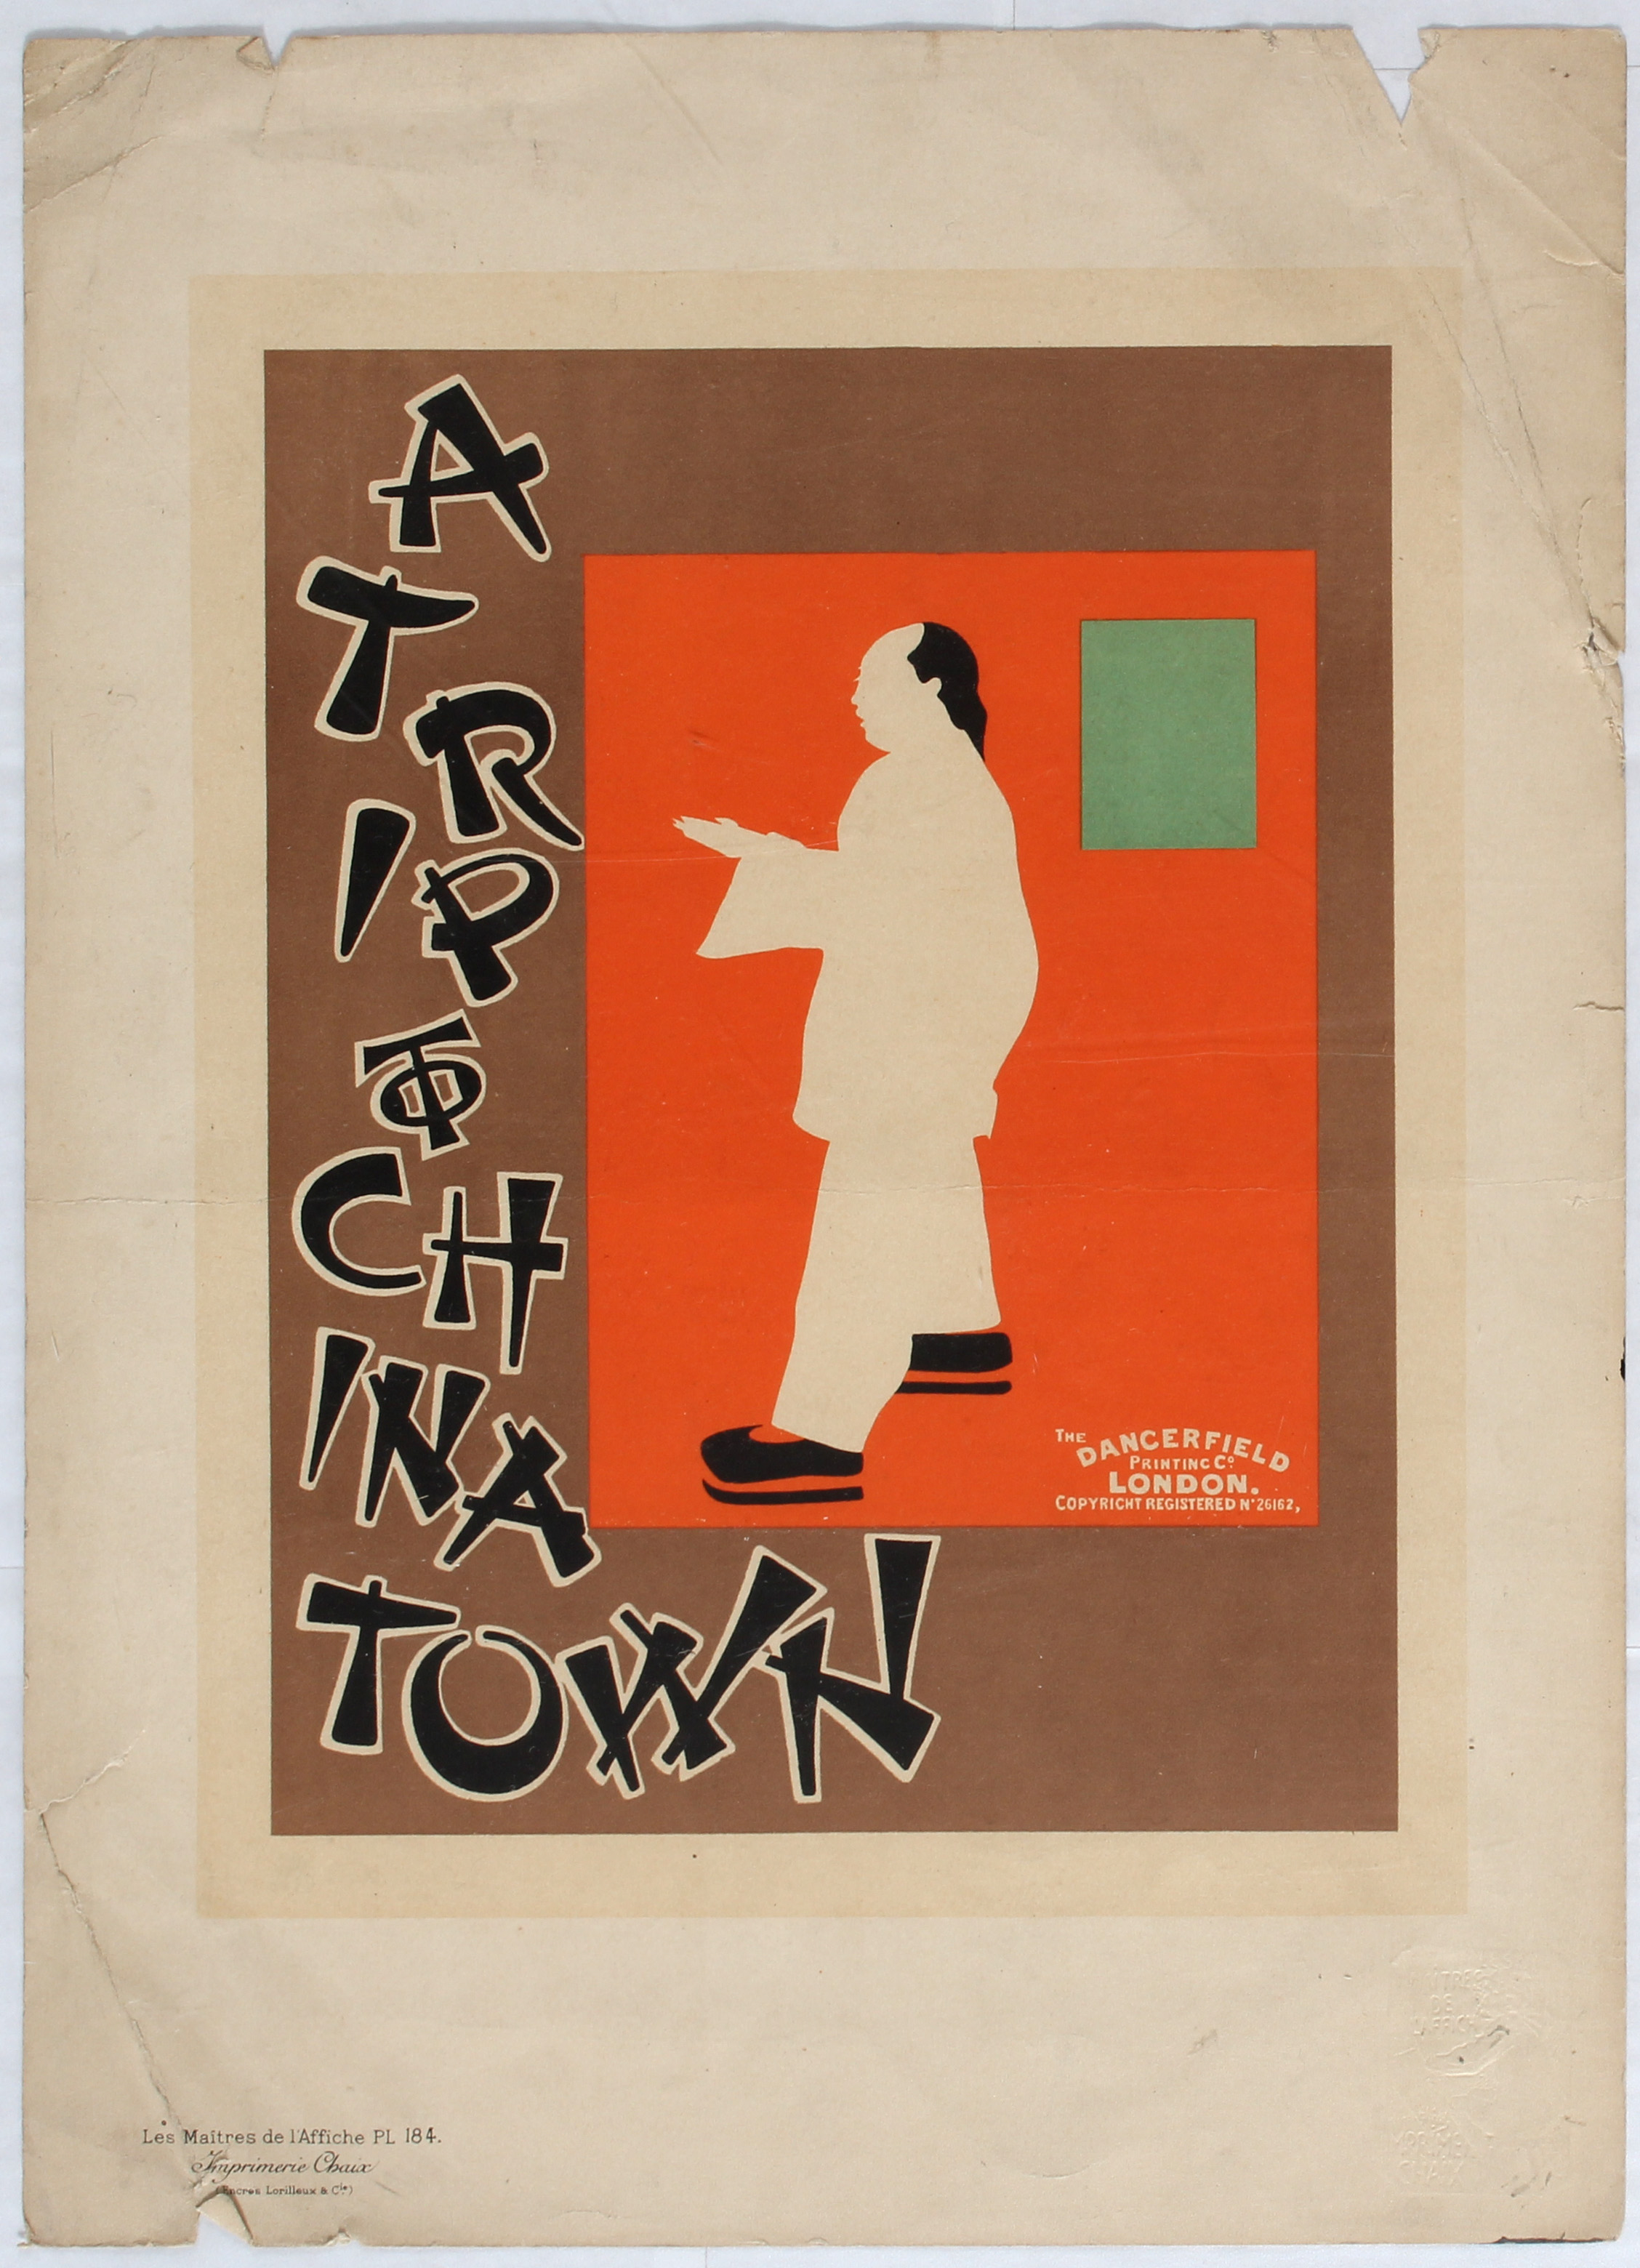 Lot 1000 - Advertising Poster Trip to Chinatown Maitres Affiche Beggarstaff